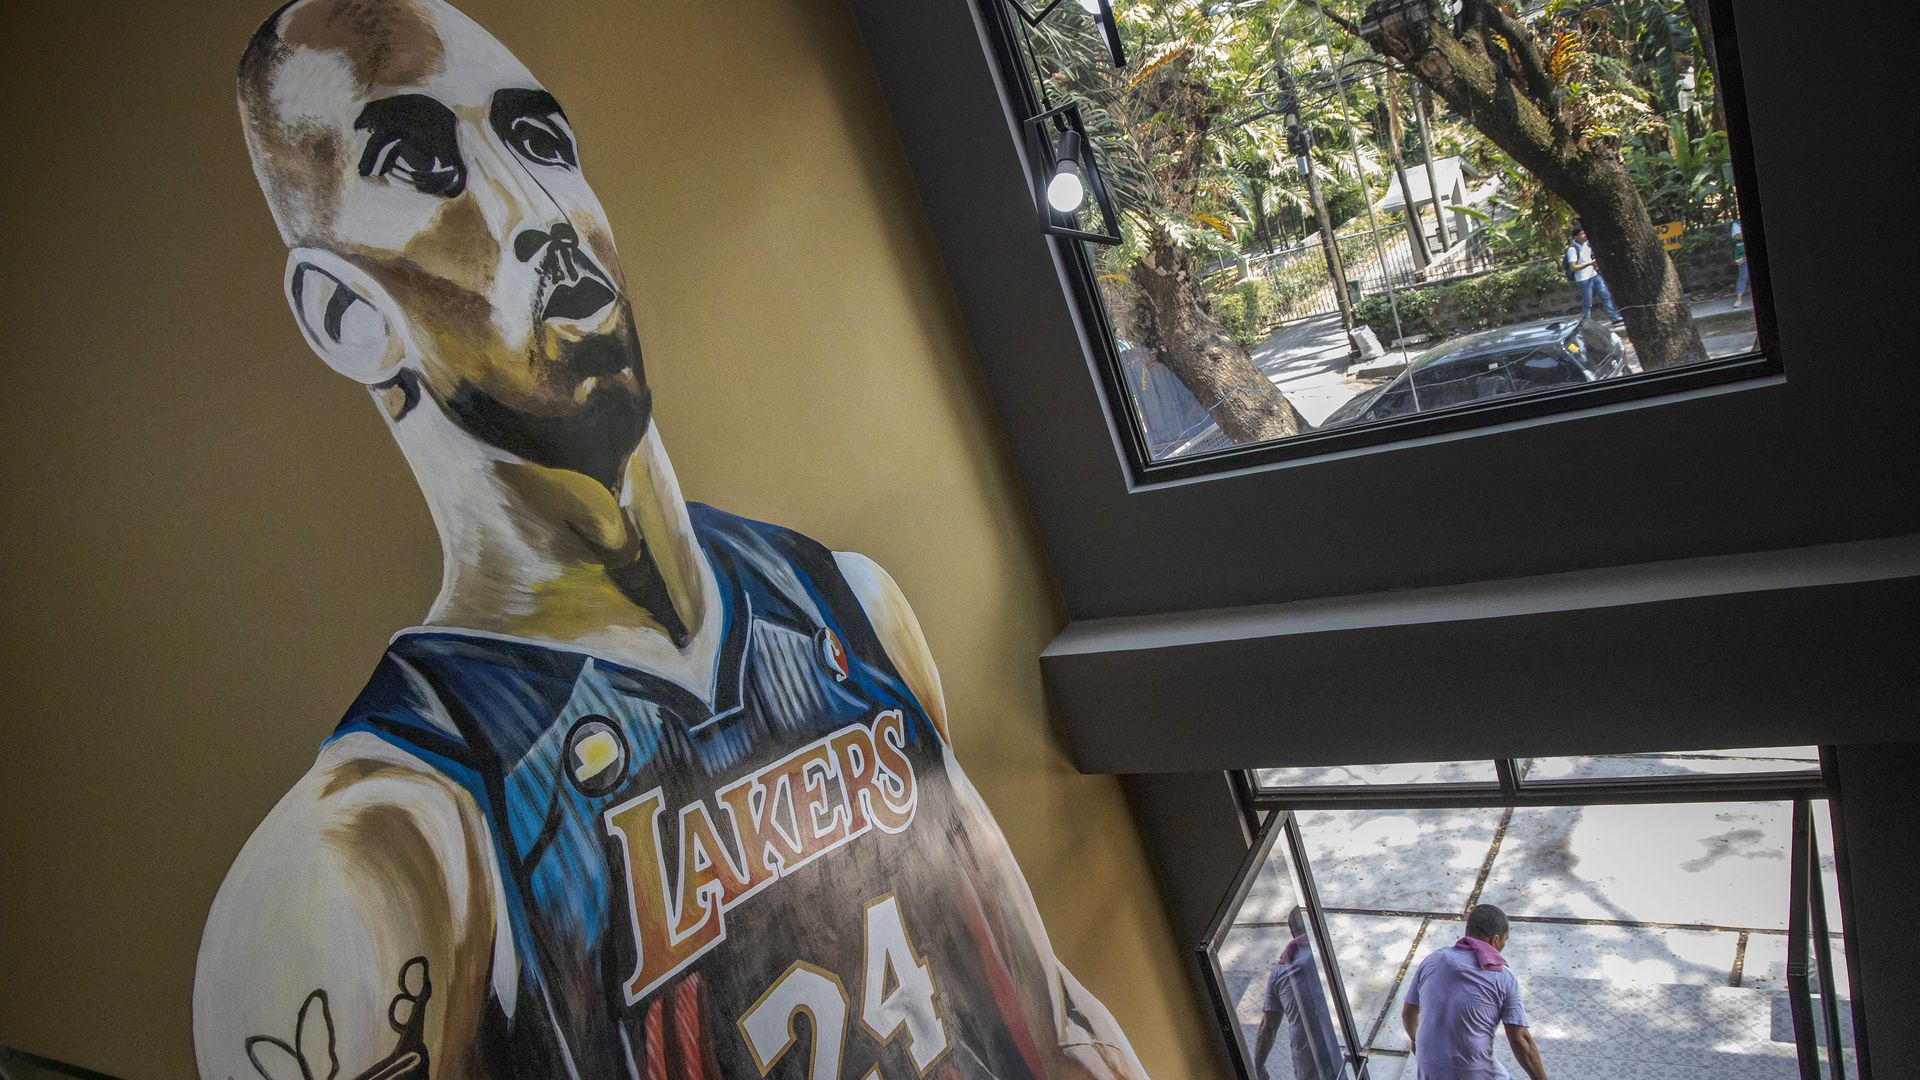 In this image Kobe Bryant is pictured in a mural on the wall in a stairwell